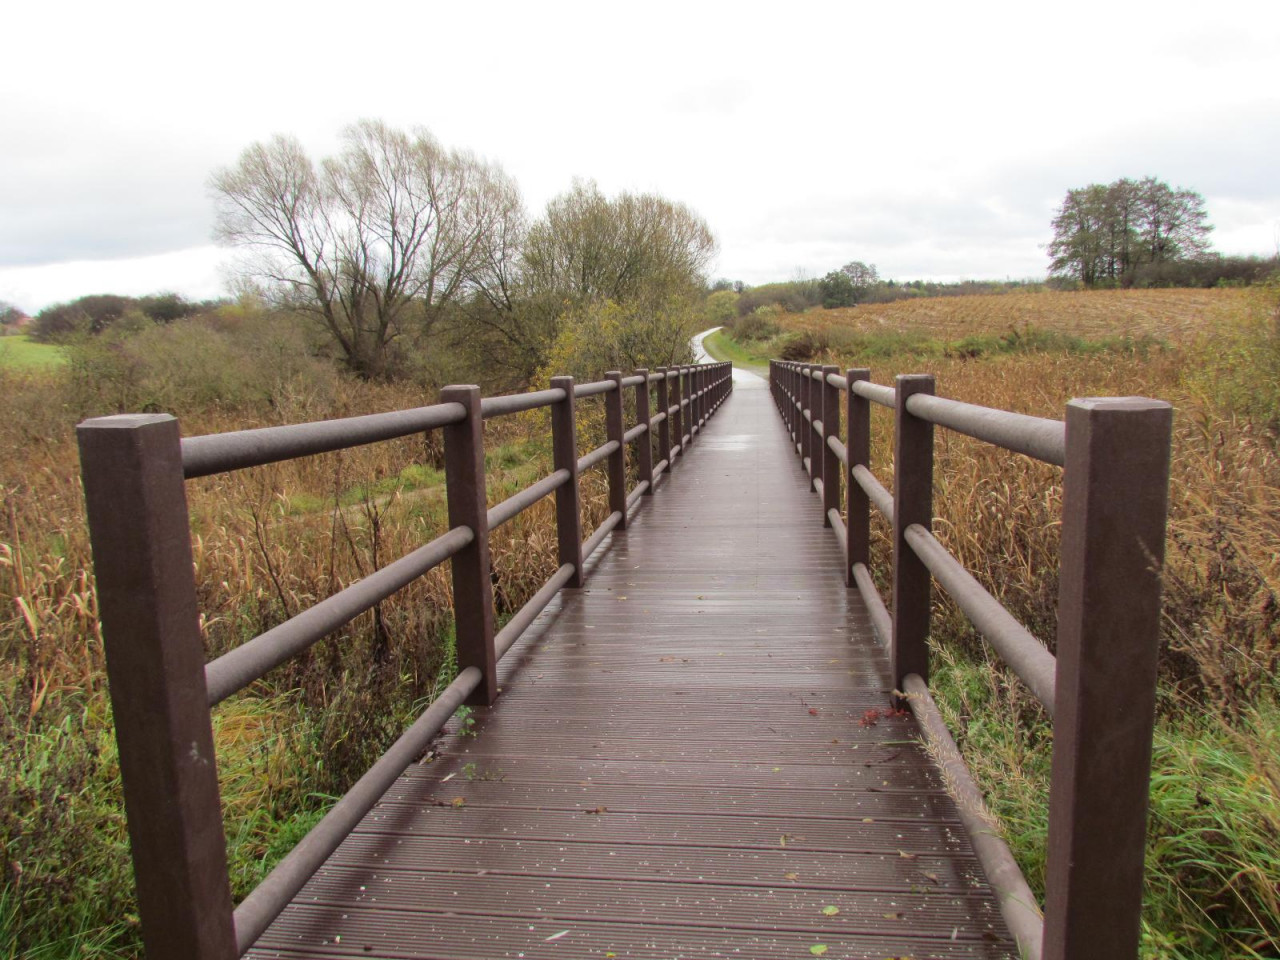 Hahn composite boardwalk